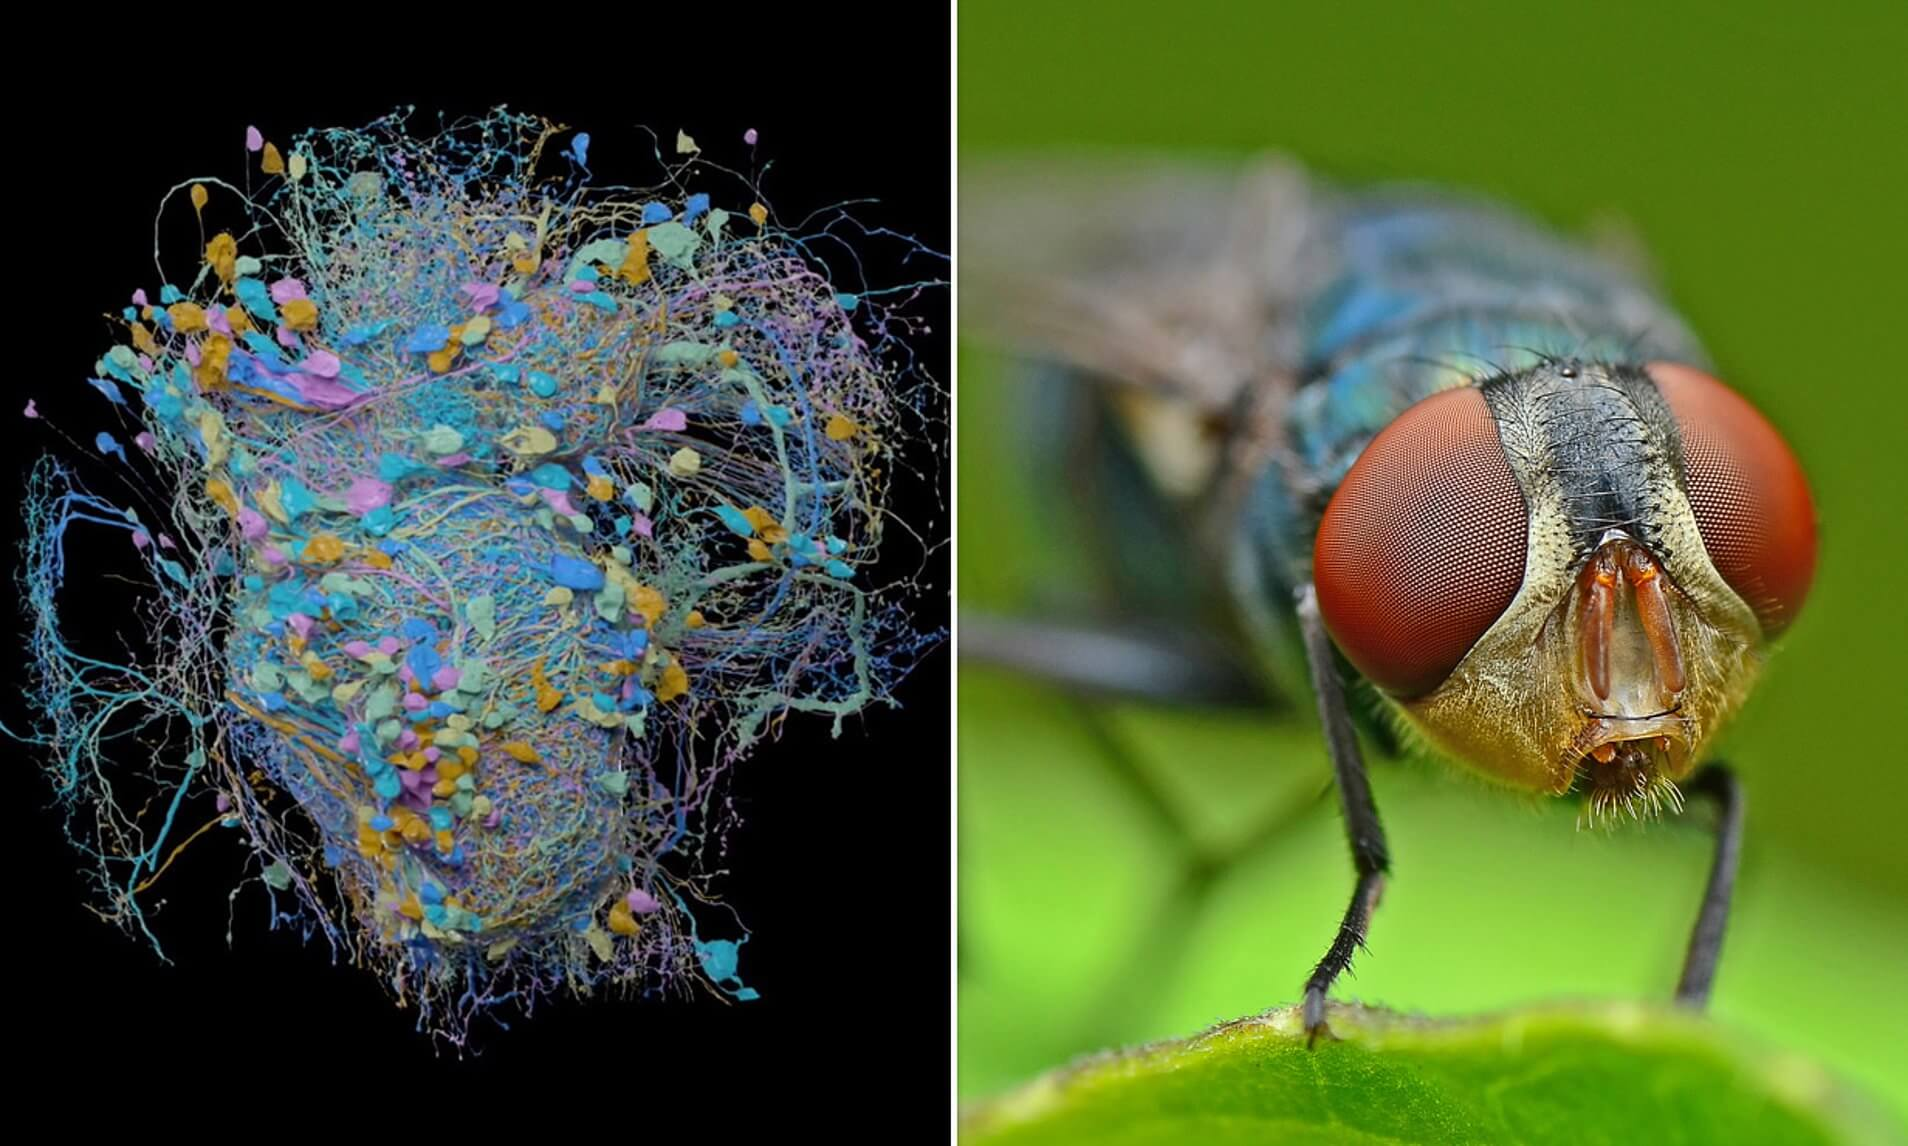 #video | Scientists have created a detailed 3D map of the brain of the fruit fly